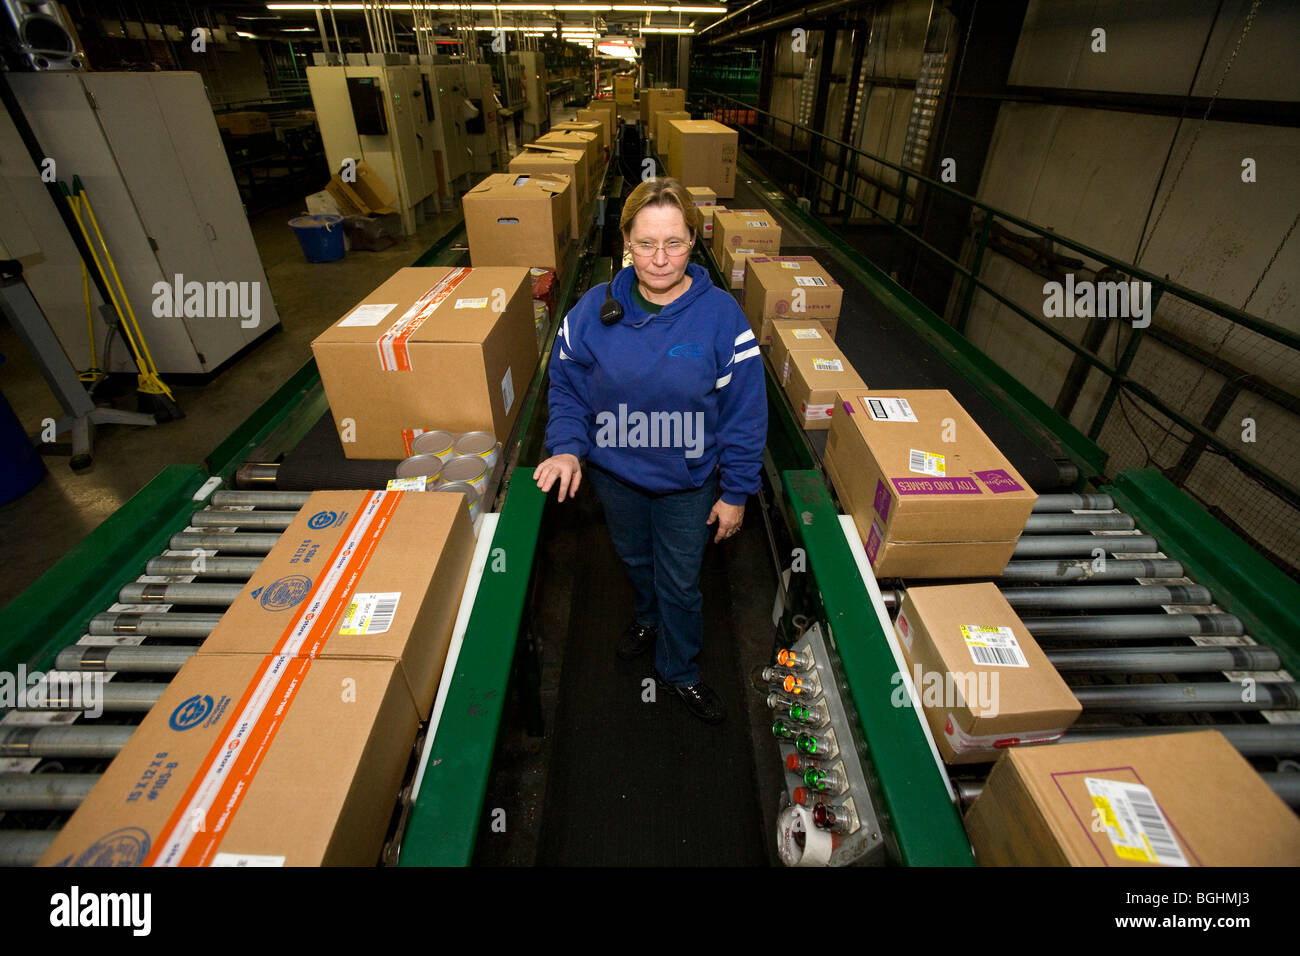 A Walmart Stores Inc. associate keeps watch over a conveyor line at a Distribution Center in Arkansas. - Stock Image